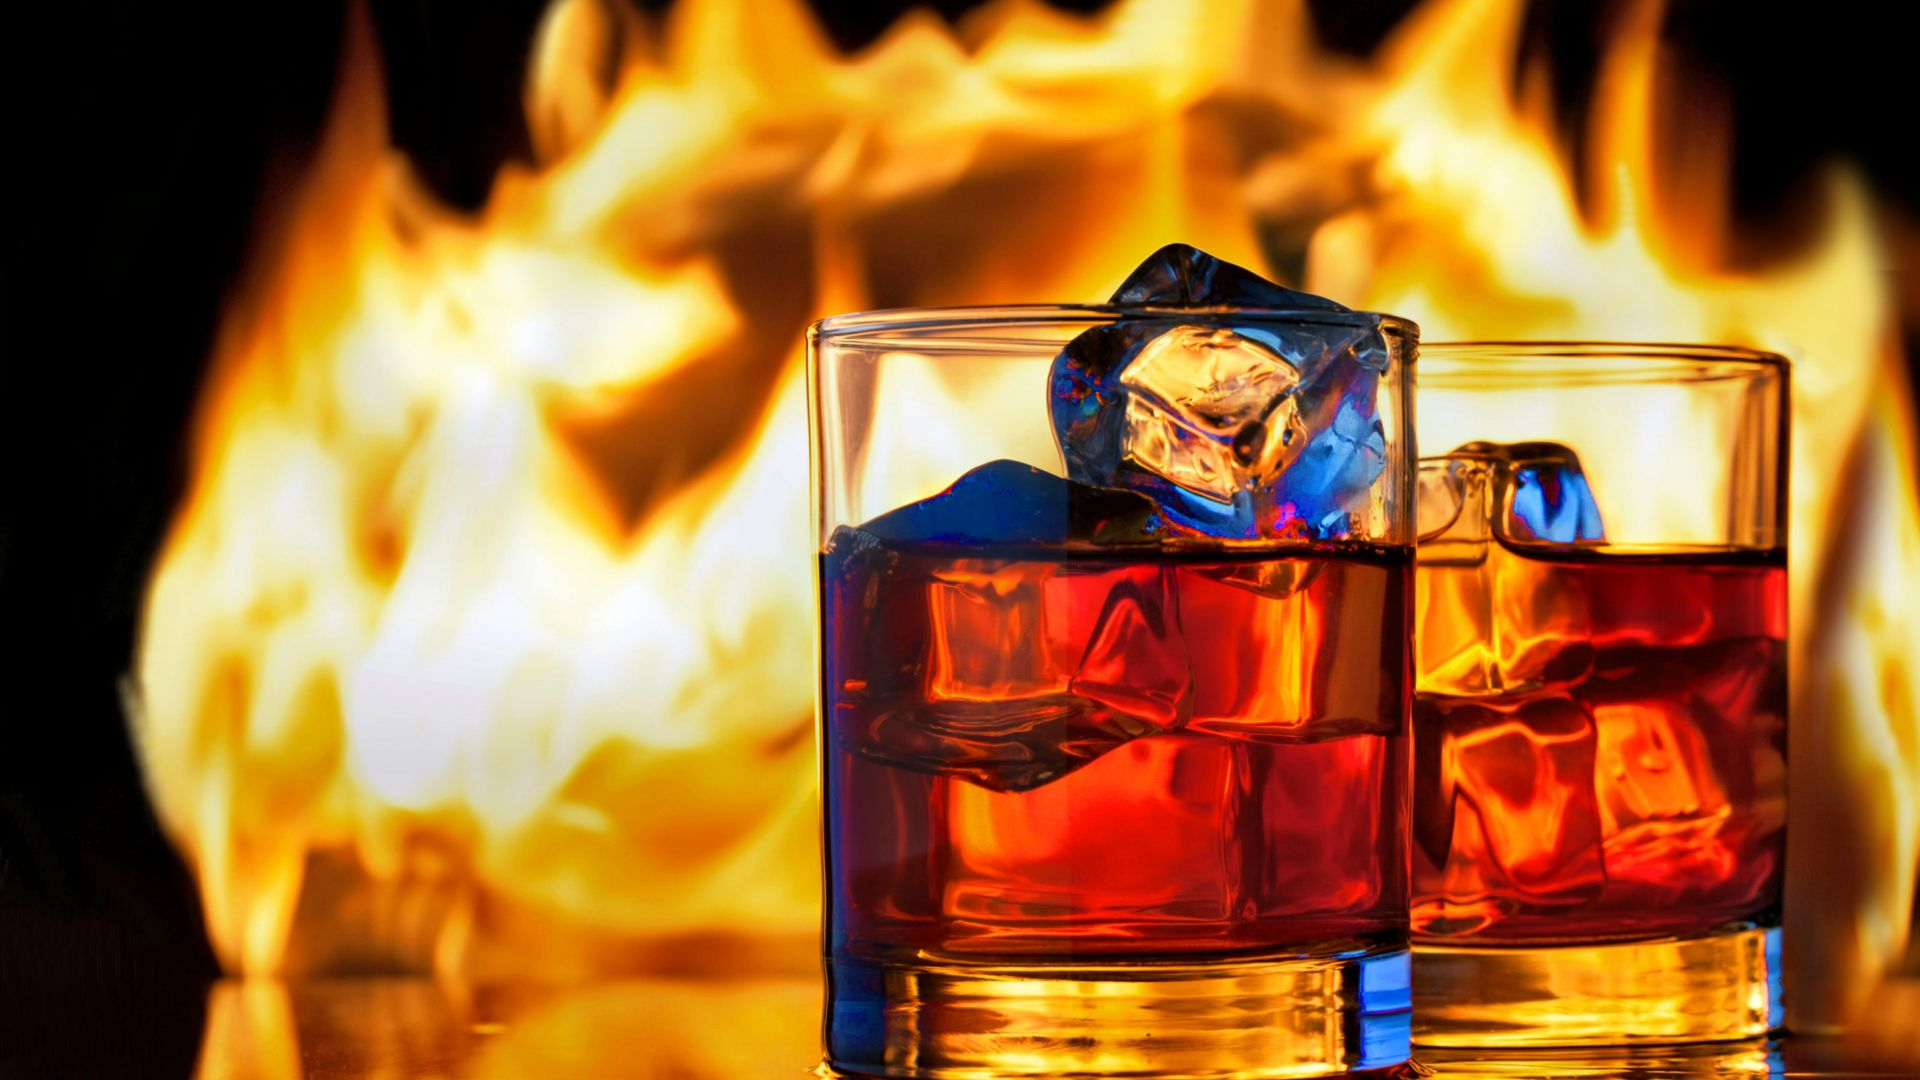 whiskey, fire, ice, 5k (horizontal)